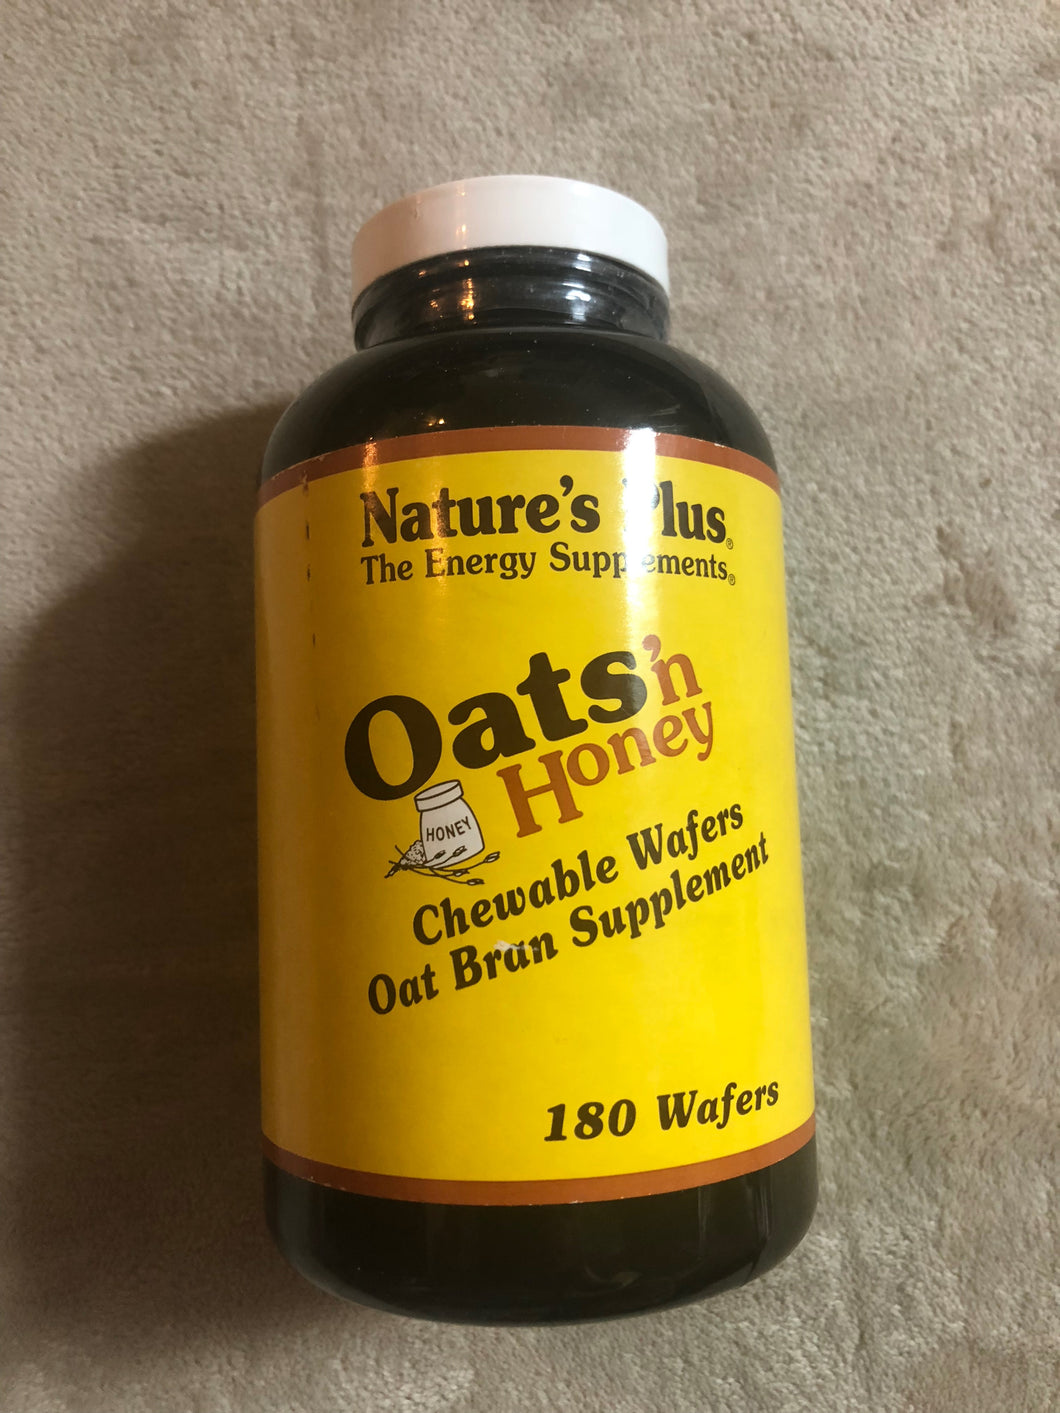 Natures Plus Oats n' Honey 180 Wafers